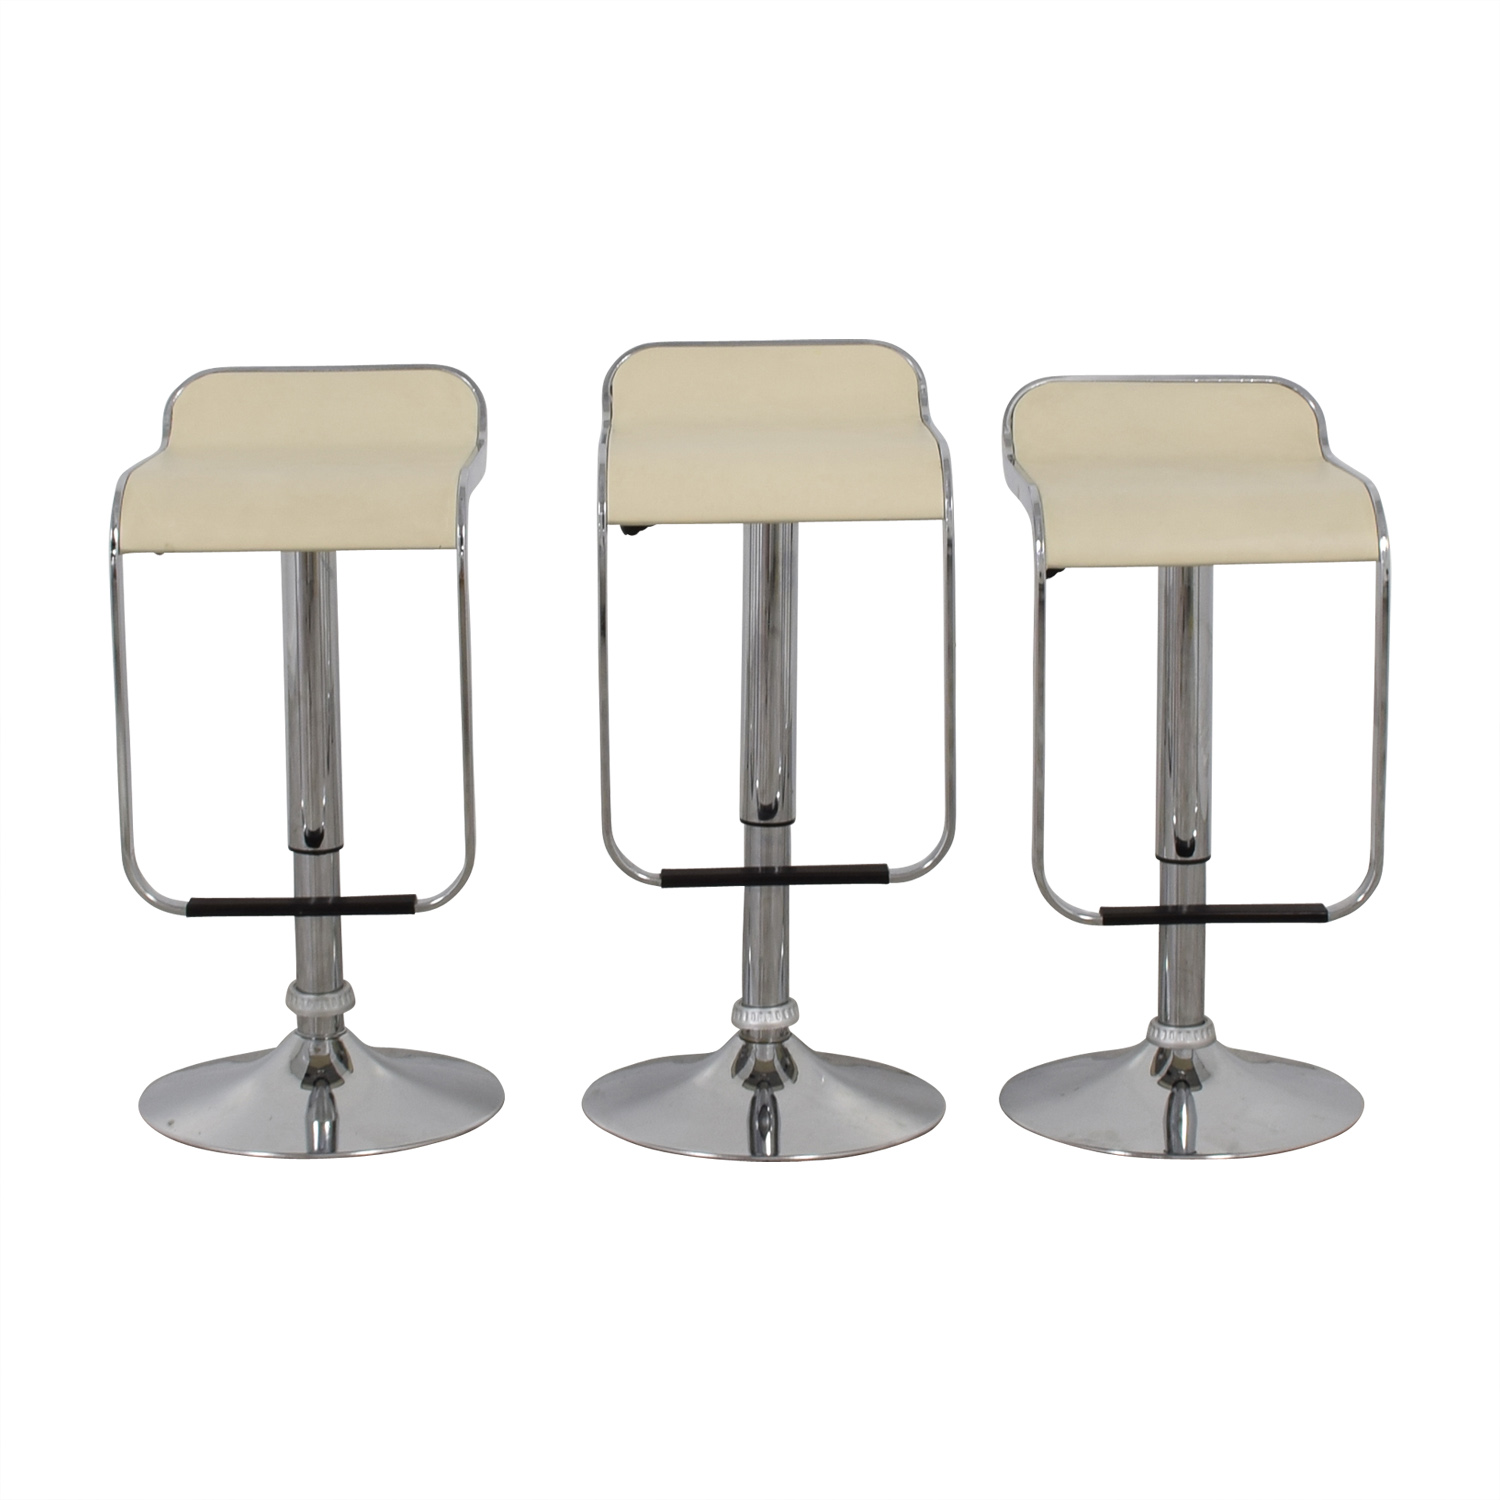 Pottery Barn White and Chrome Stools / Stools